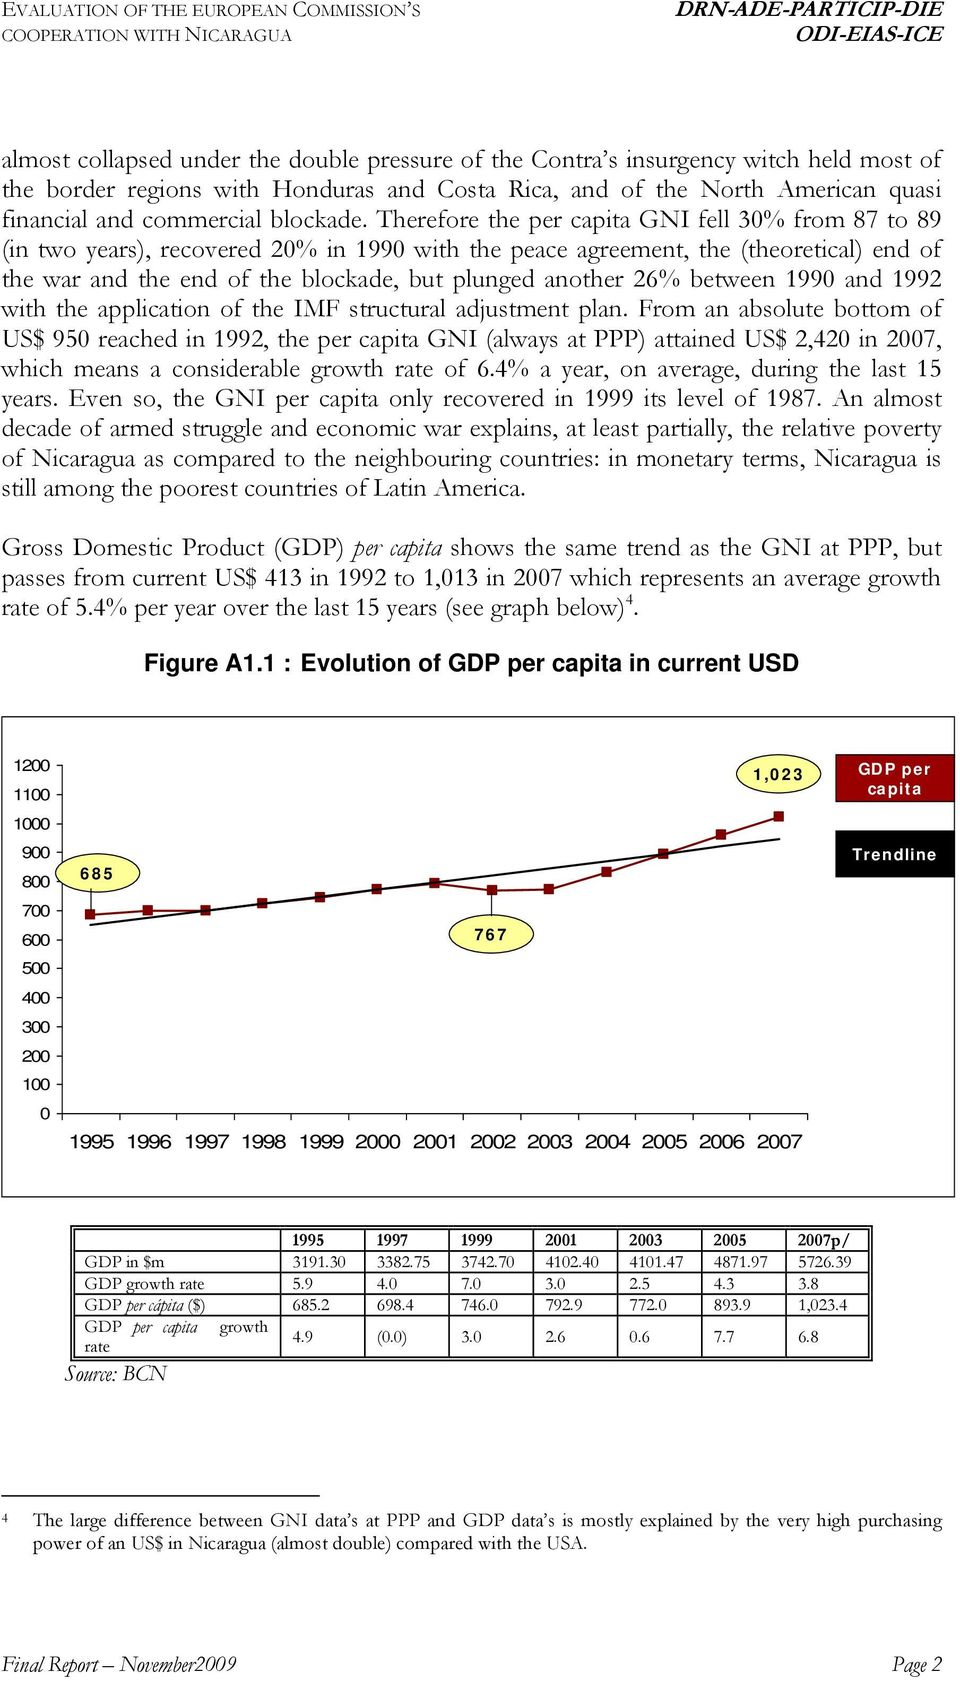 Therefore the per capita GNI fell 30% from 87 to 89 (in two years), recovered 20% in 1990 with the peace agreement, the (theoretical) end of the war and the end of the blockade, but plunged another